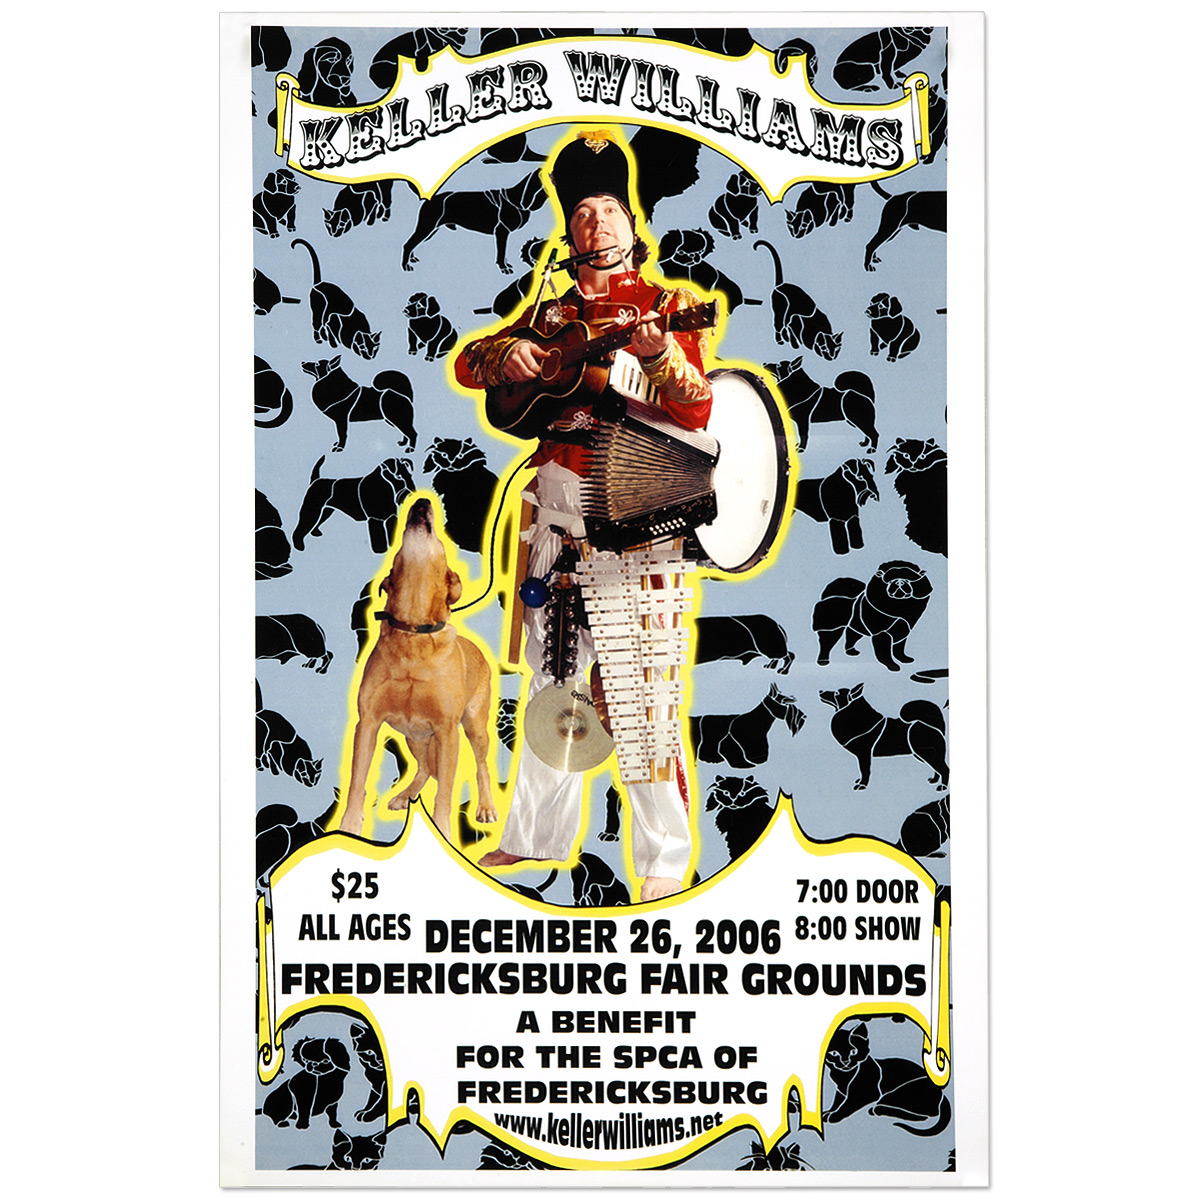 Keller Williams Fredericksburg, VA 12/26/06 Event Poster